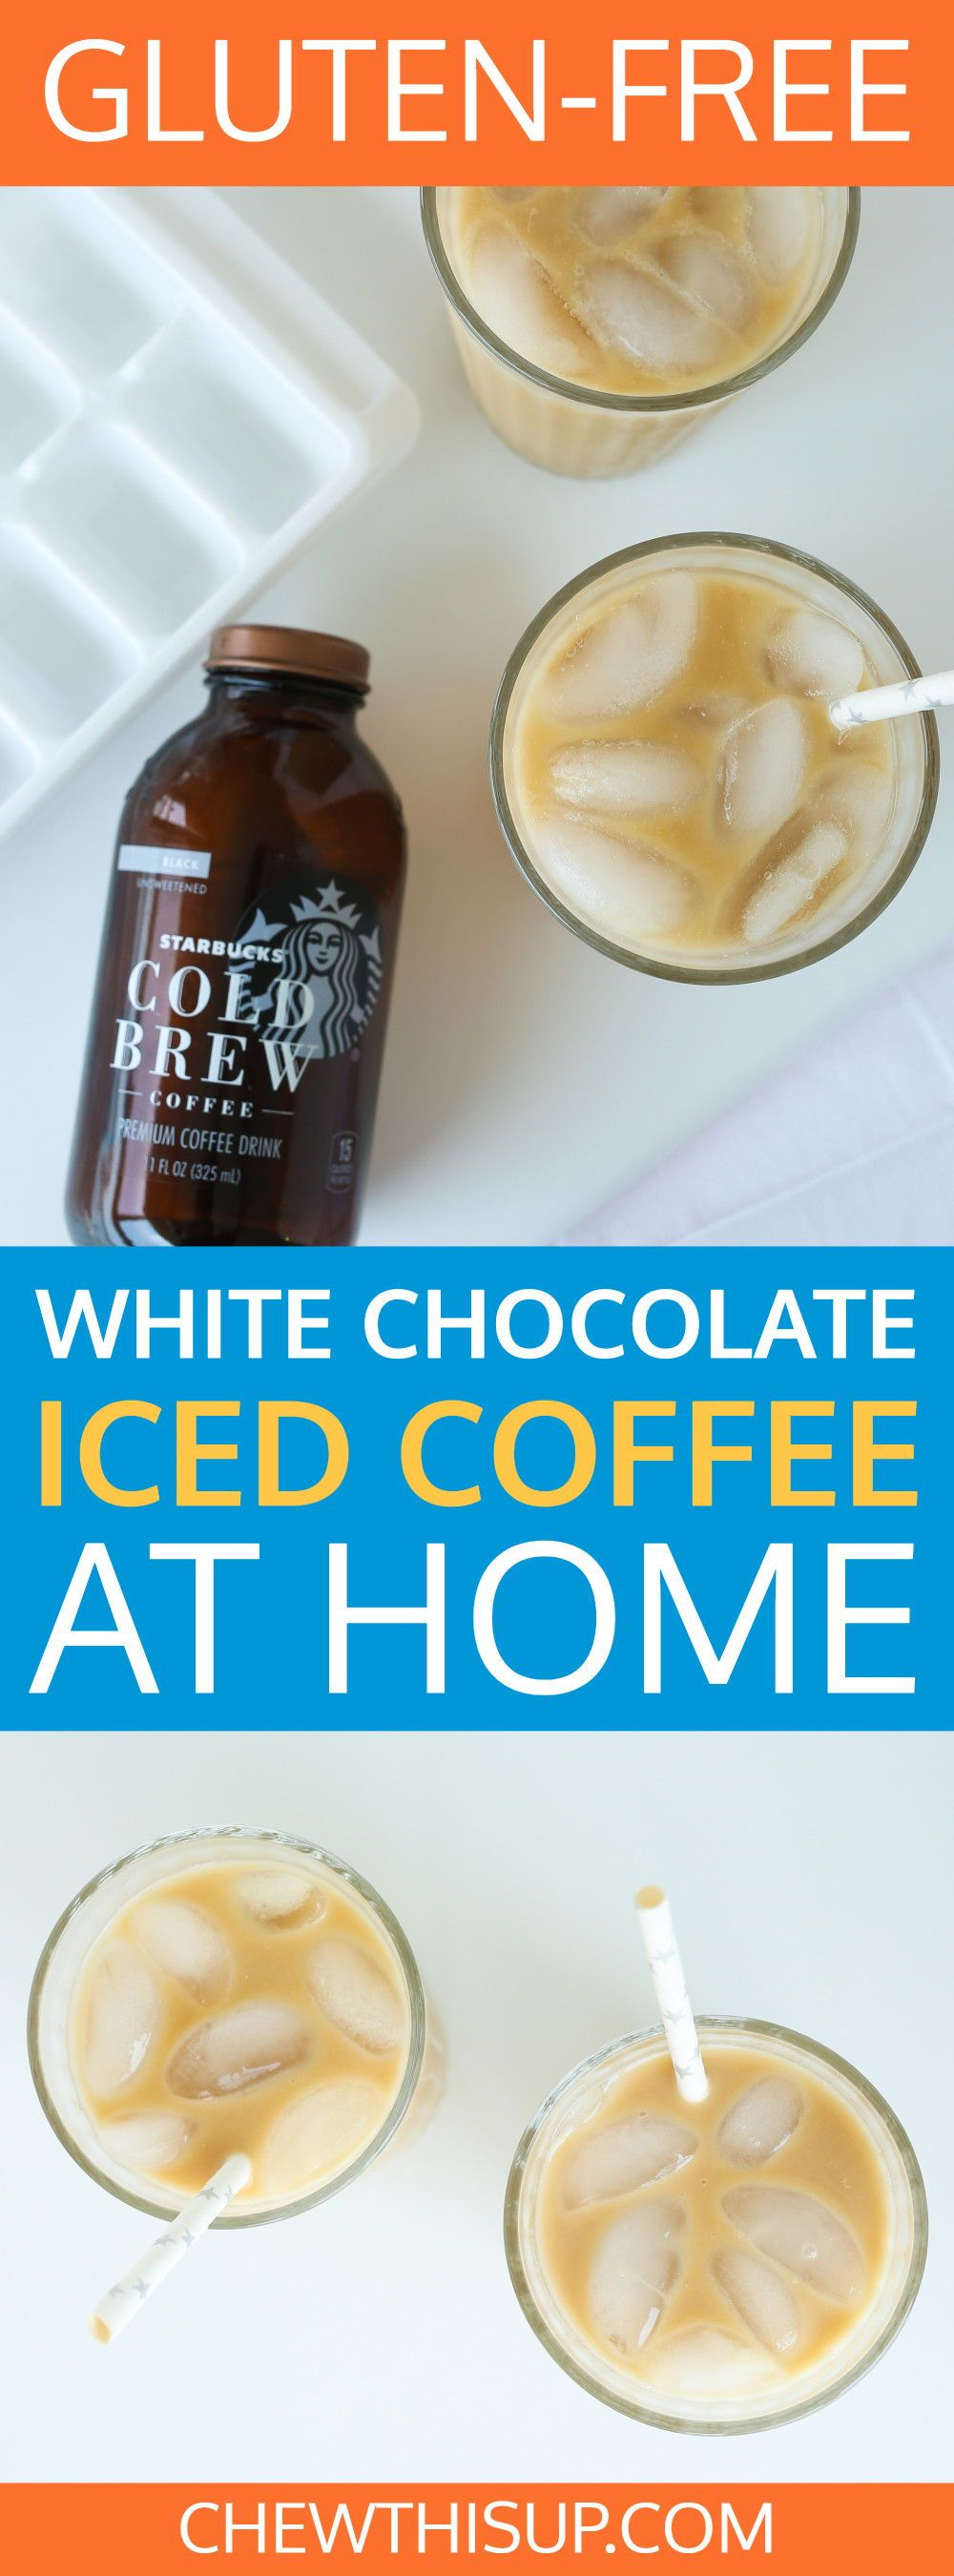 Ive been looking for the best iced coffee recipe and i